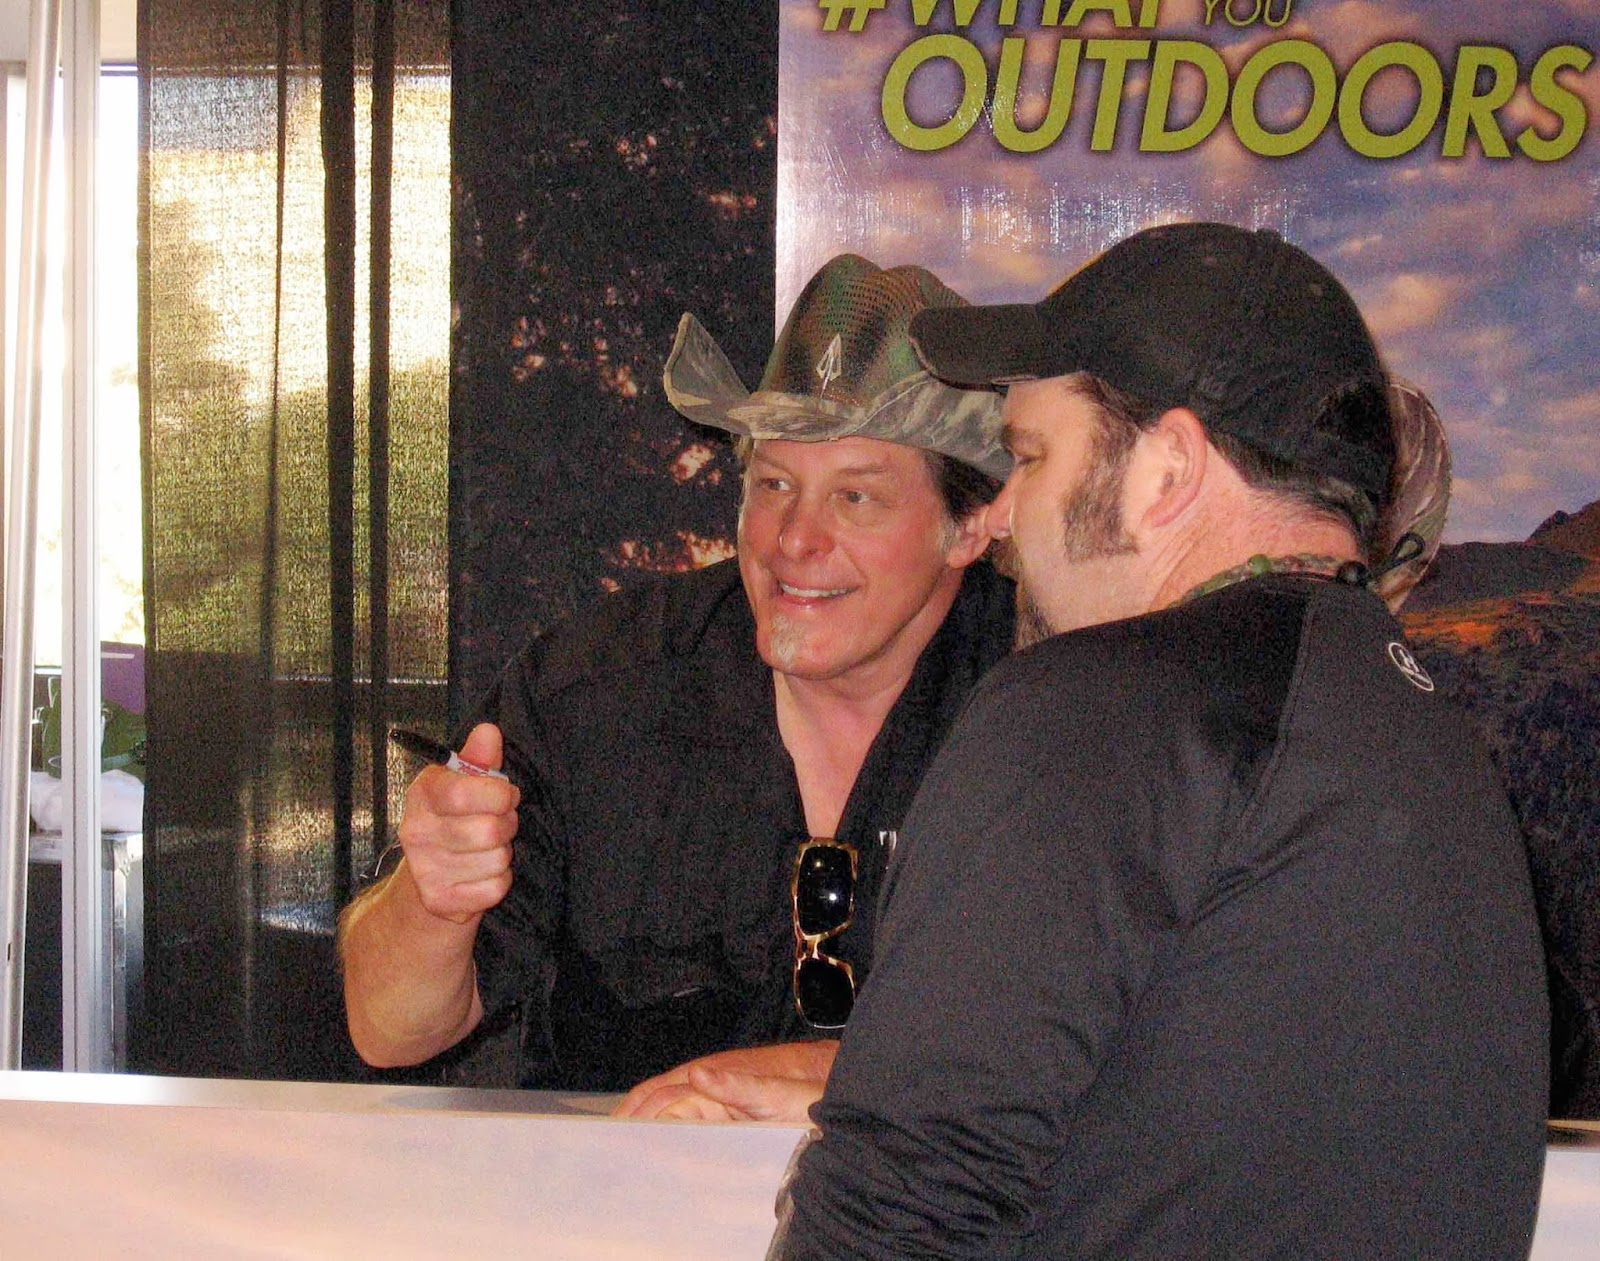 Rocky mountain bushcraft shot show 2014 first impression review - Shot Show 2014 Ted Nugent Interacts With Fans